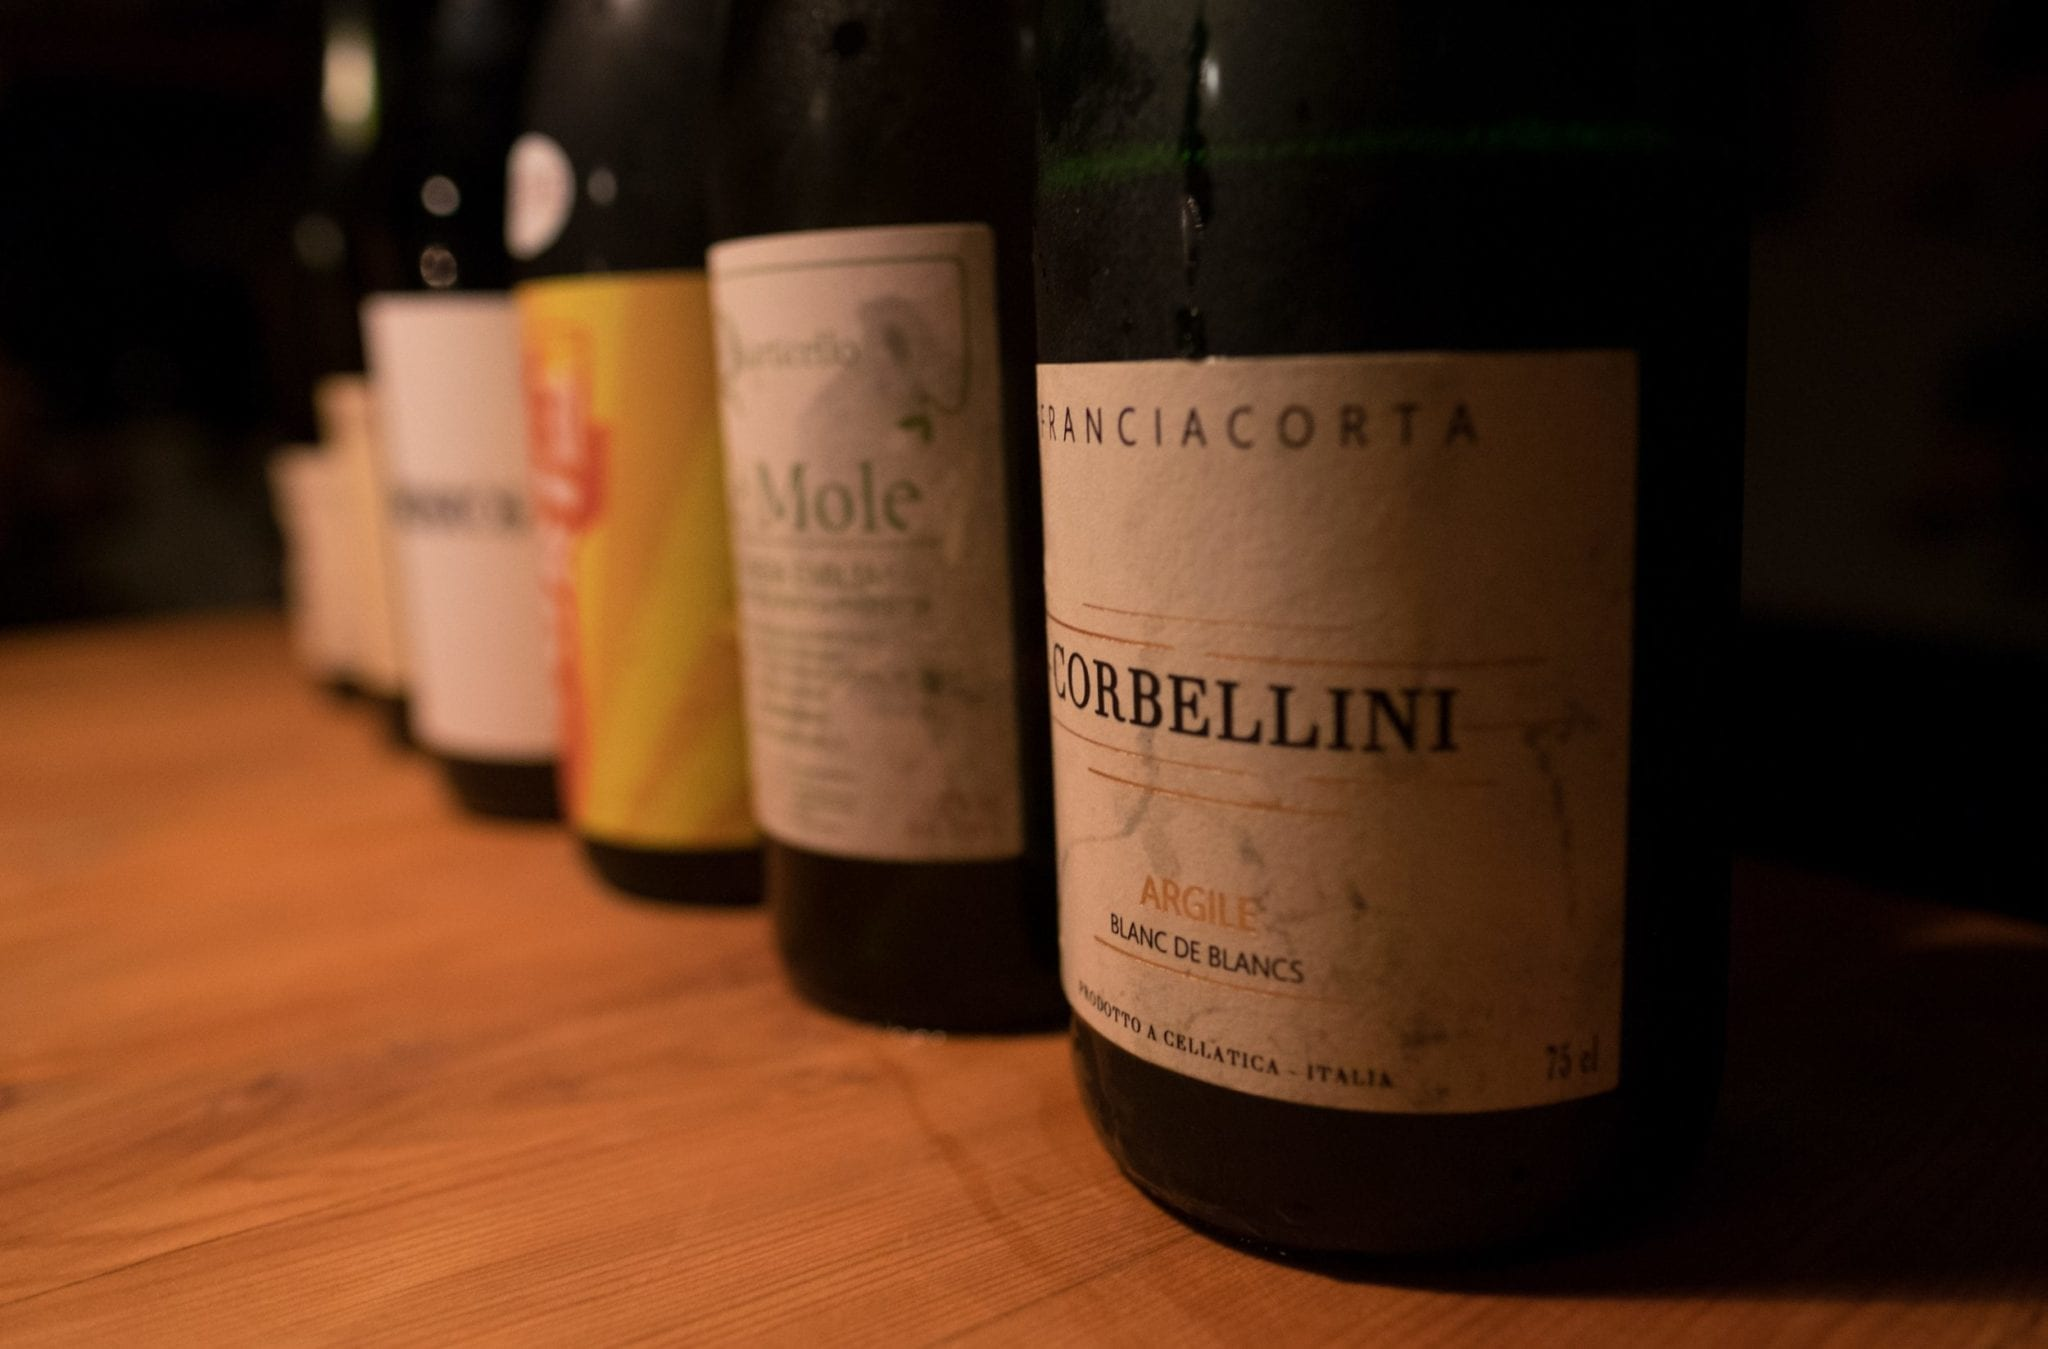 Several wine bottles lined up in a row in dim light, leading with a Franciacorta.